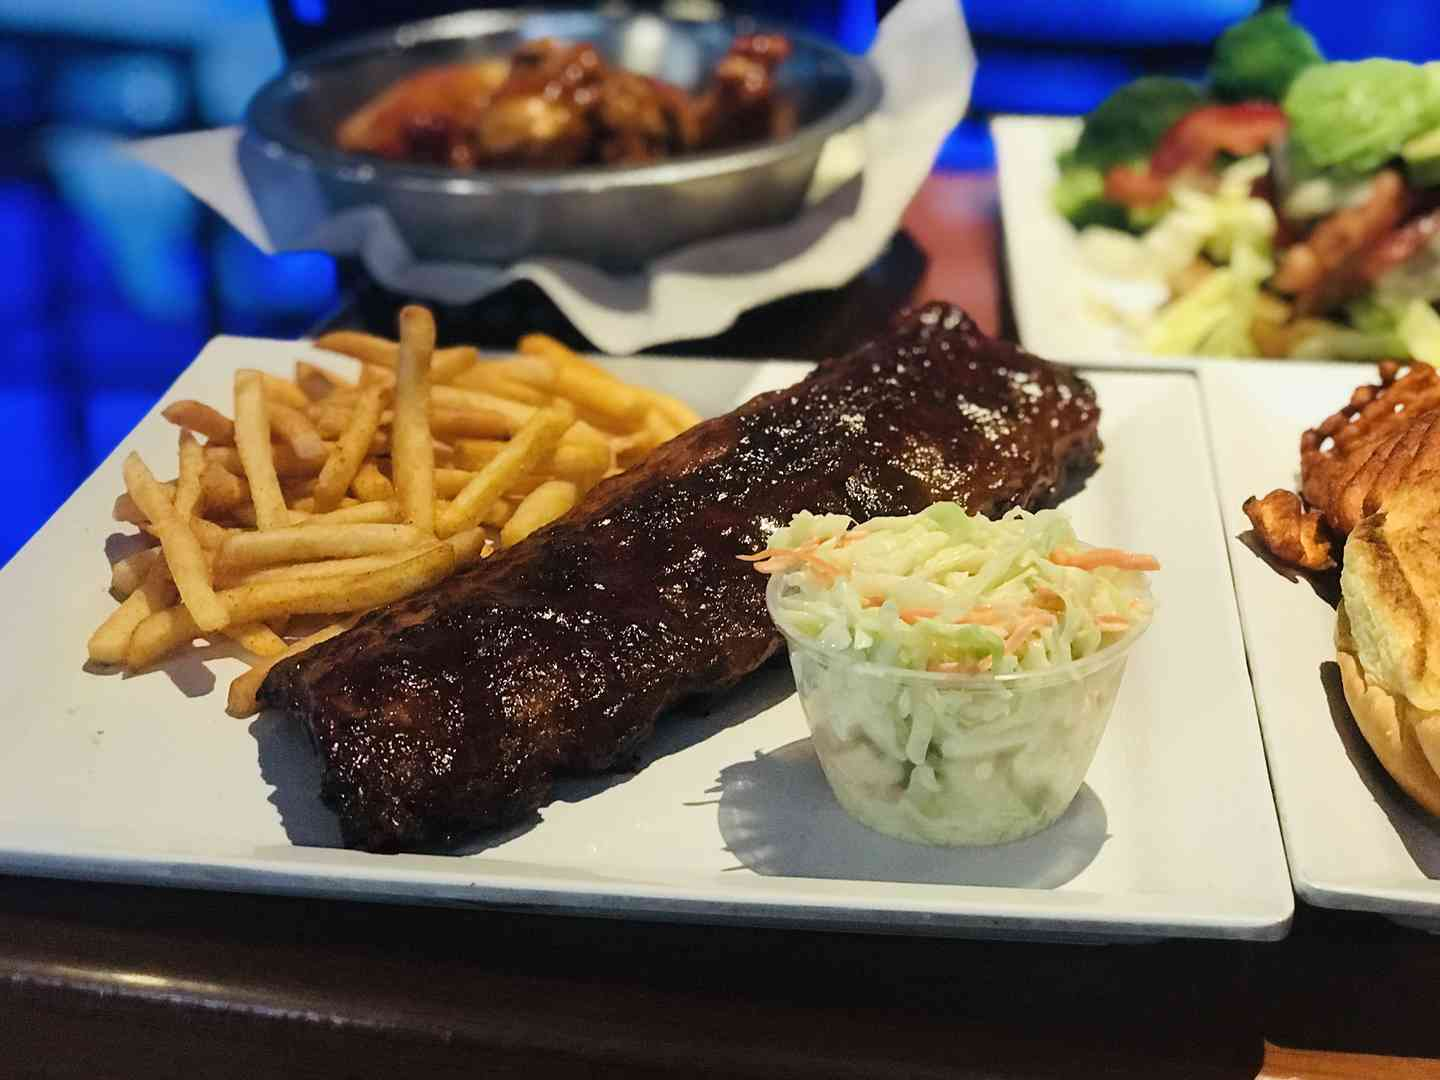 Ribs with fries and coleslaw